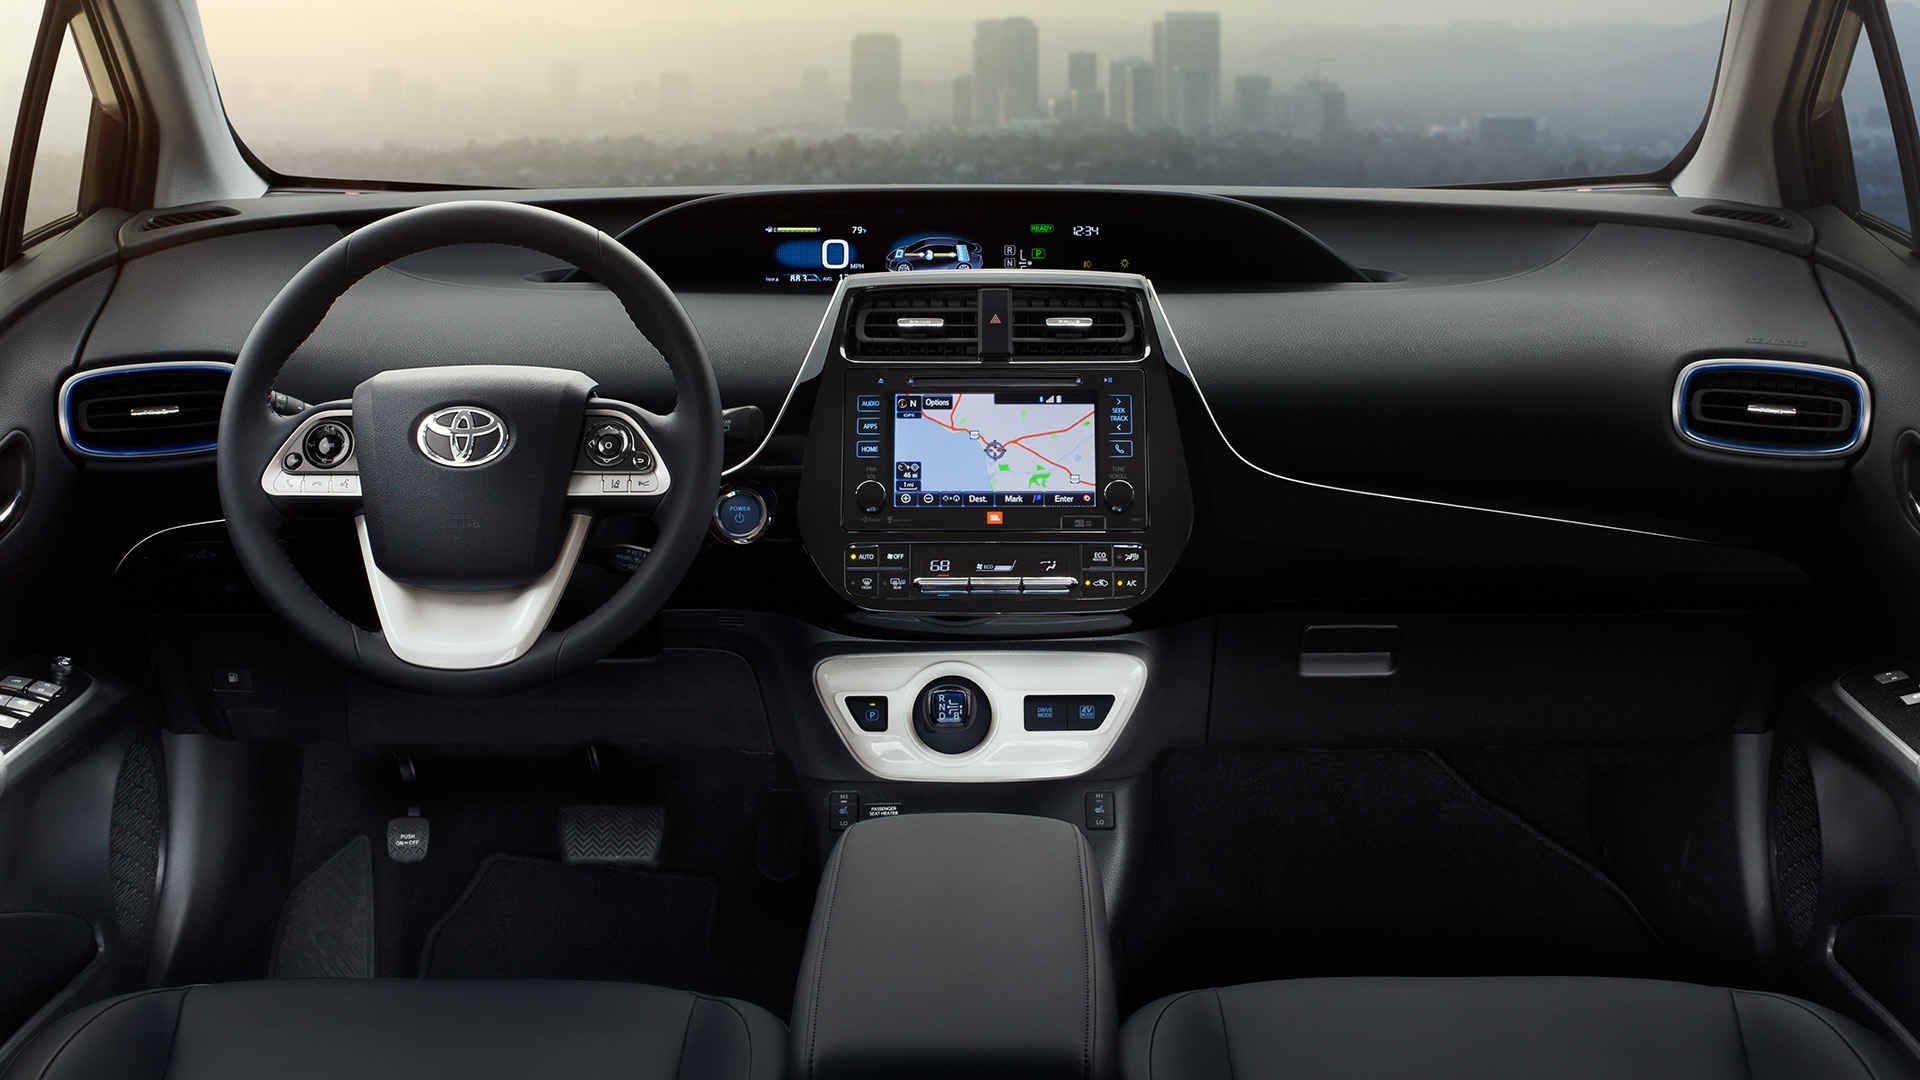 2017 Toyota Prius Overview The News Wheel